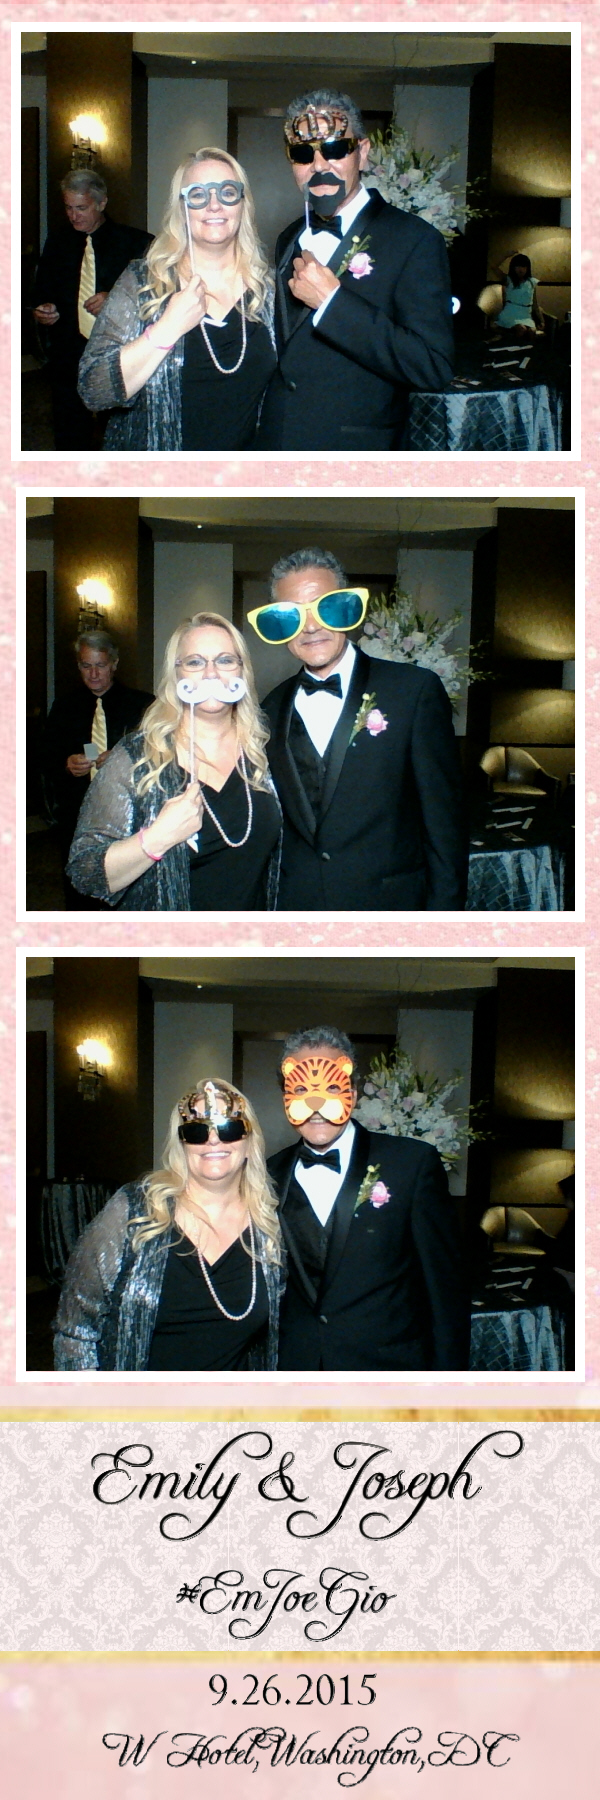 Guest House Events Photo Booth E&J (39).jpg